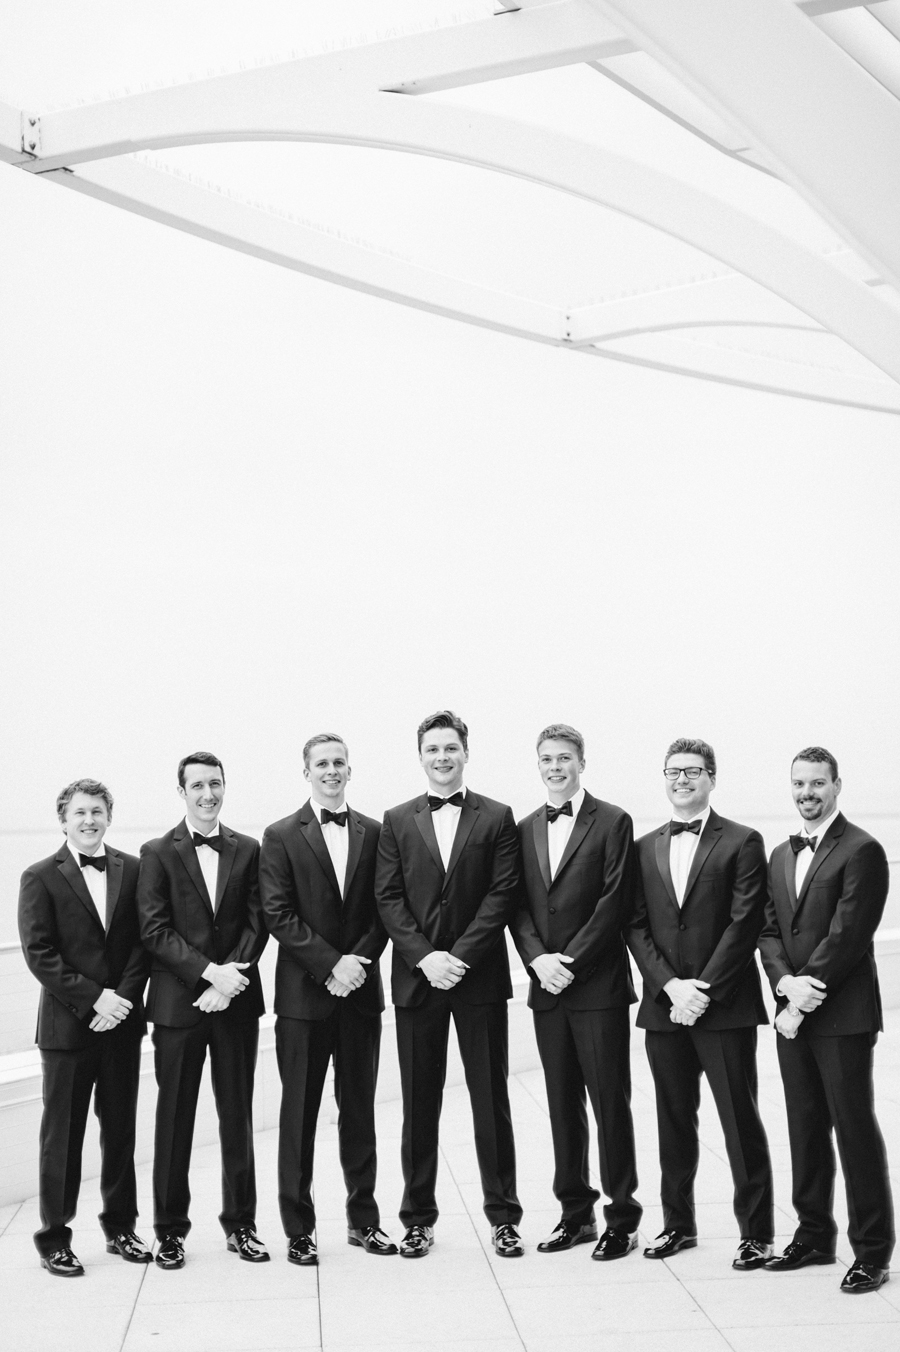 Misty Milwaukee Wedding at Discovery World by Chicago Photographers Two Birds Photography012